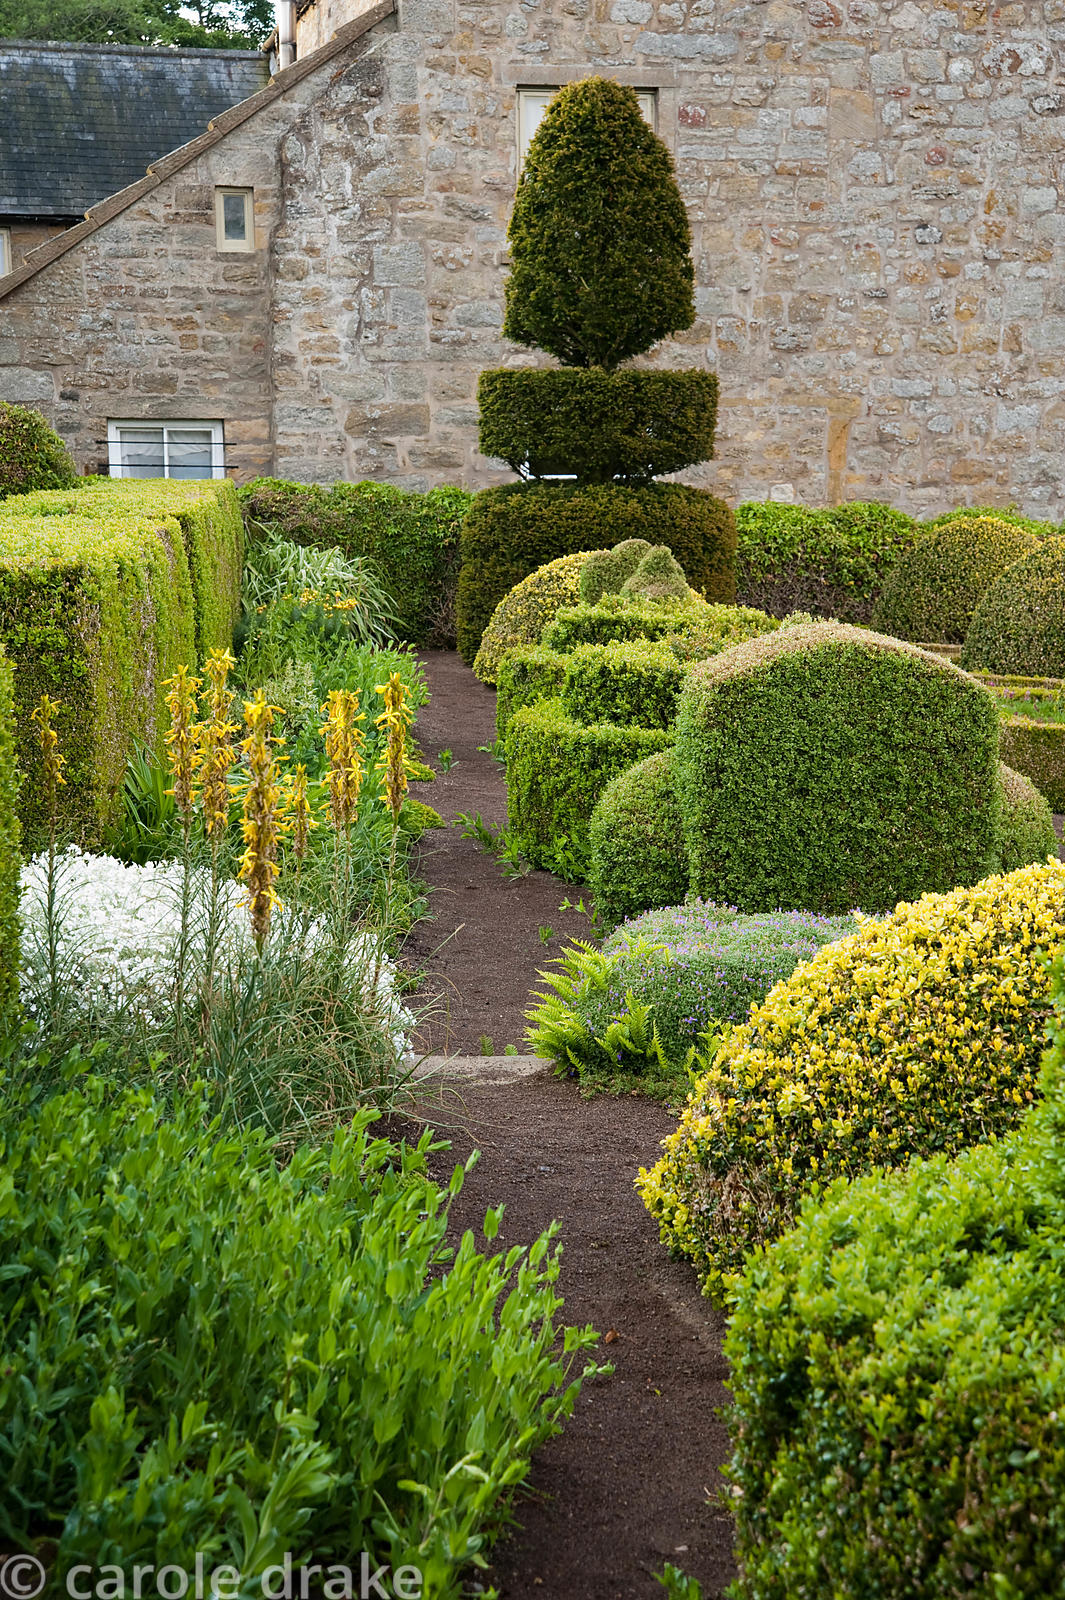 The Formal Garden at the front of the house features box and yew topiary with yellow spikes of Asphodeline lutea. Herterton H...